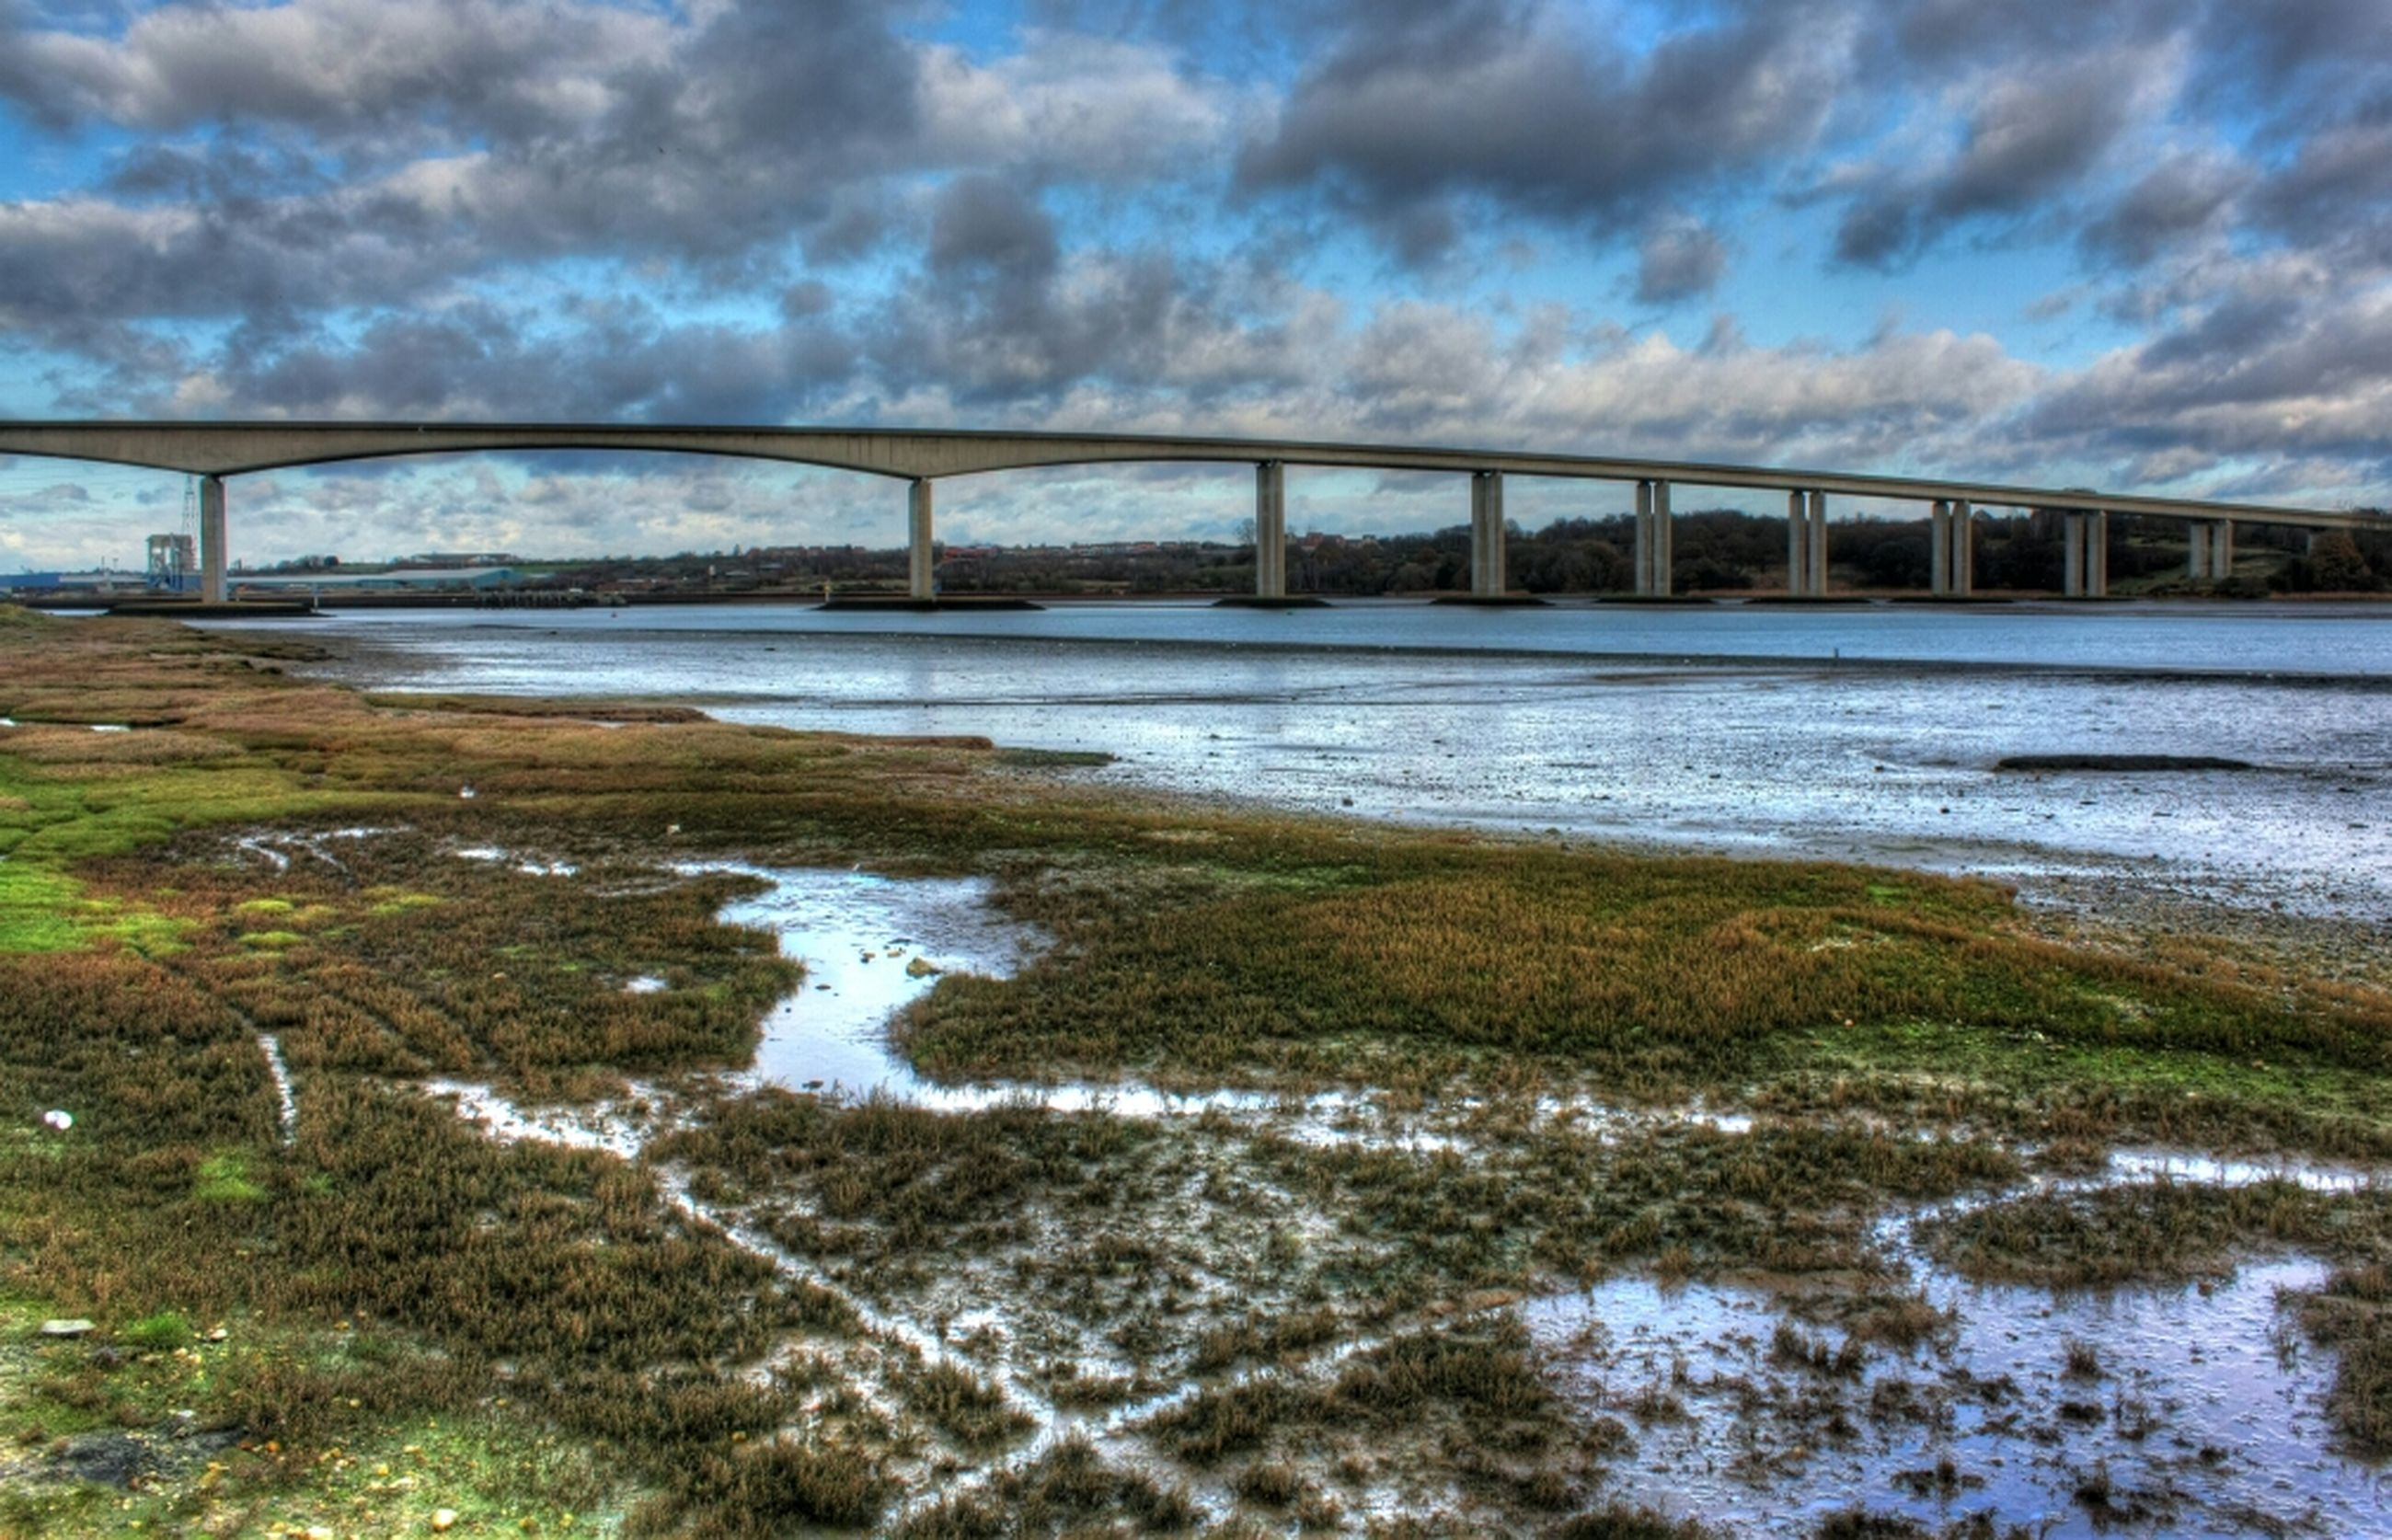 sky, cloud - sky, cloudy, connection, bridge - man made structure, water, cloud, river, built structure, architecture, weather, nature, railing, bridge, tranquility, engineering, day, scenics, tranquil scene, overcast